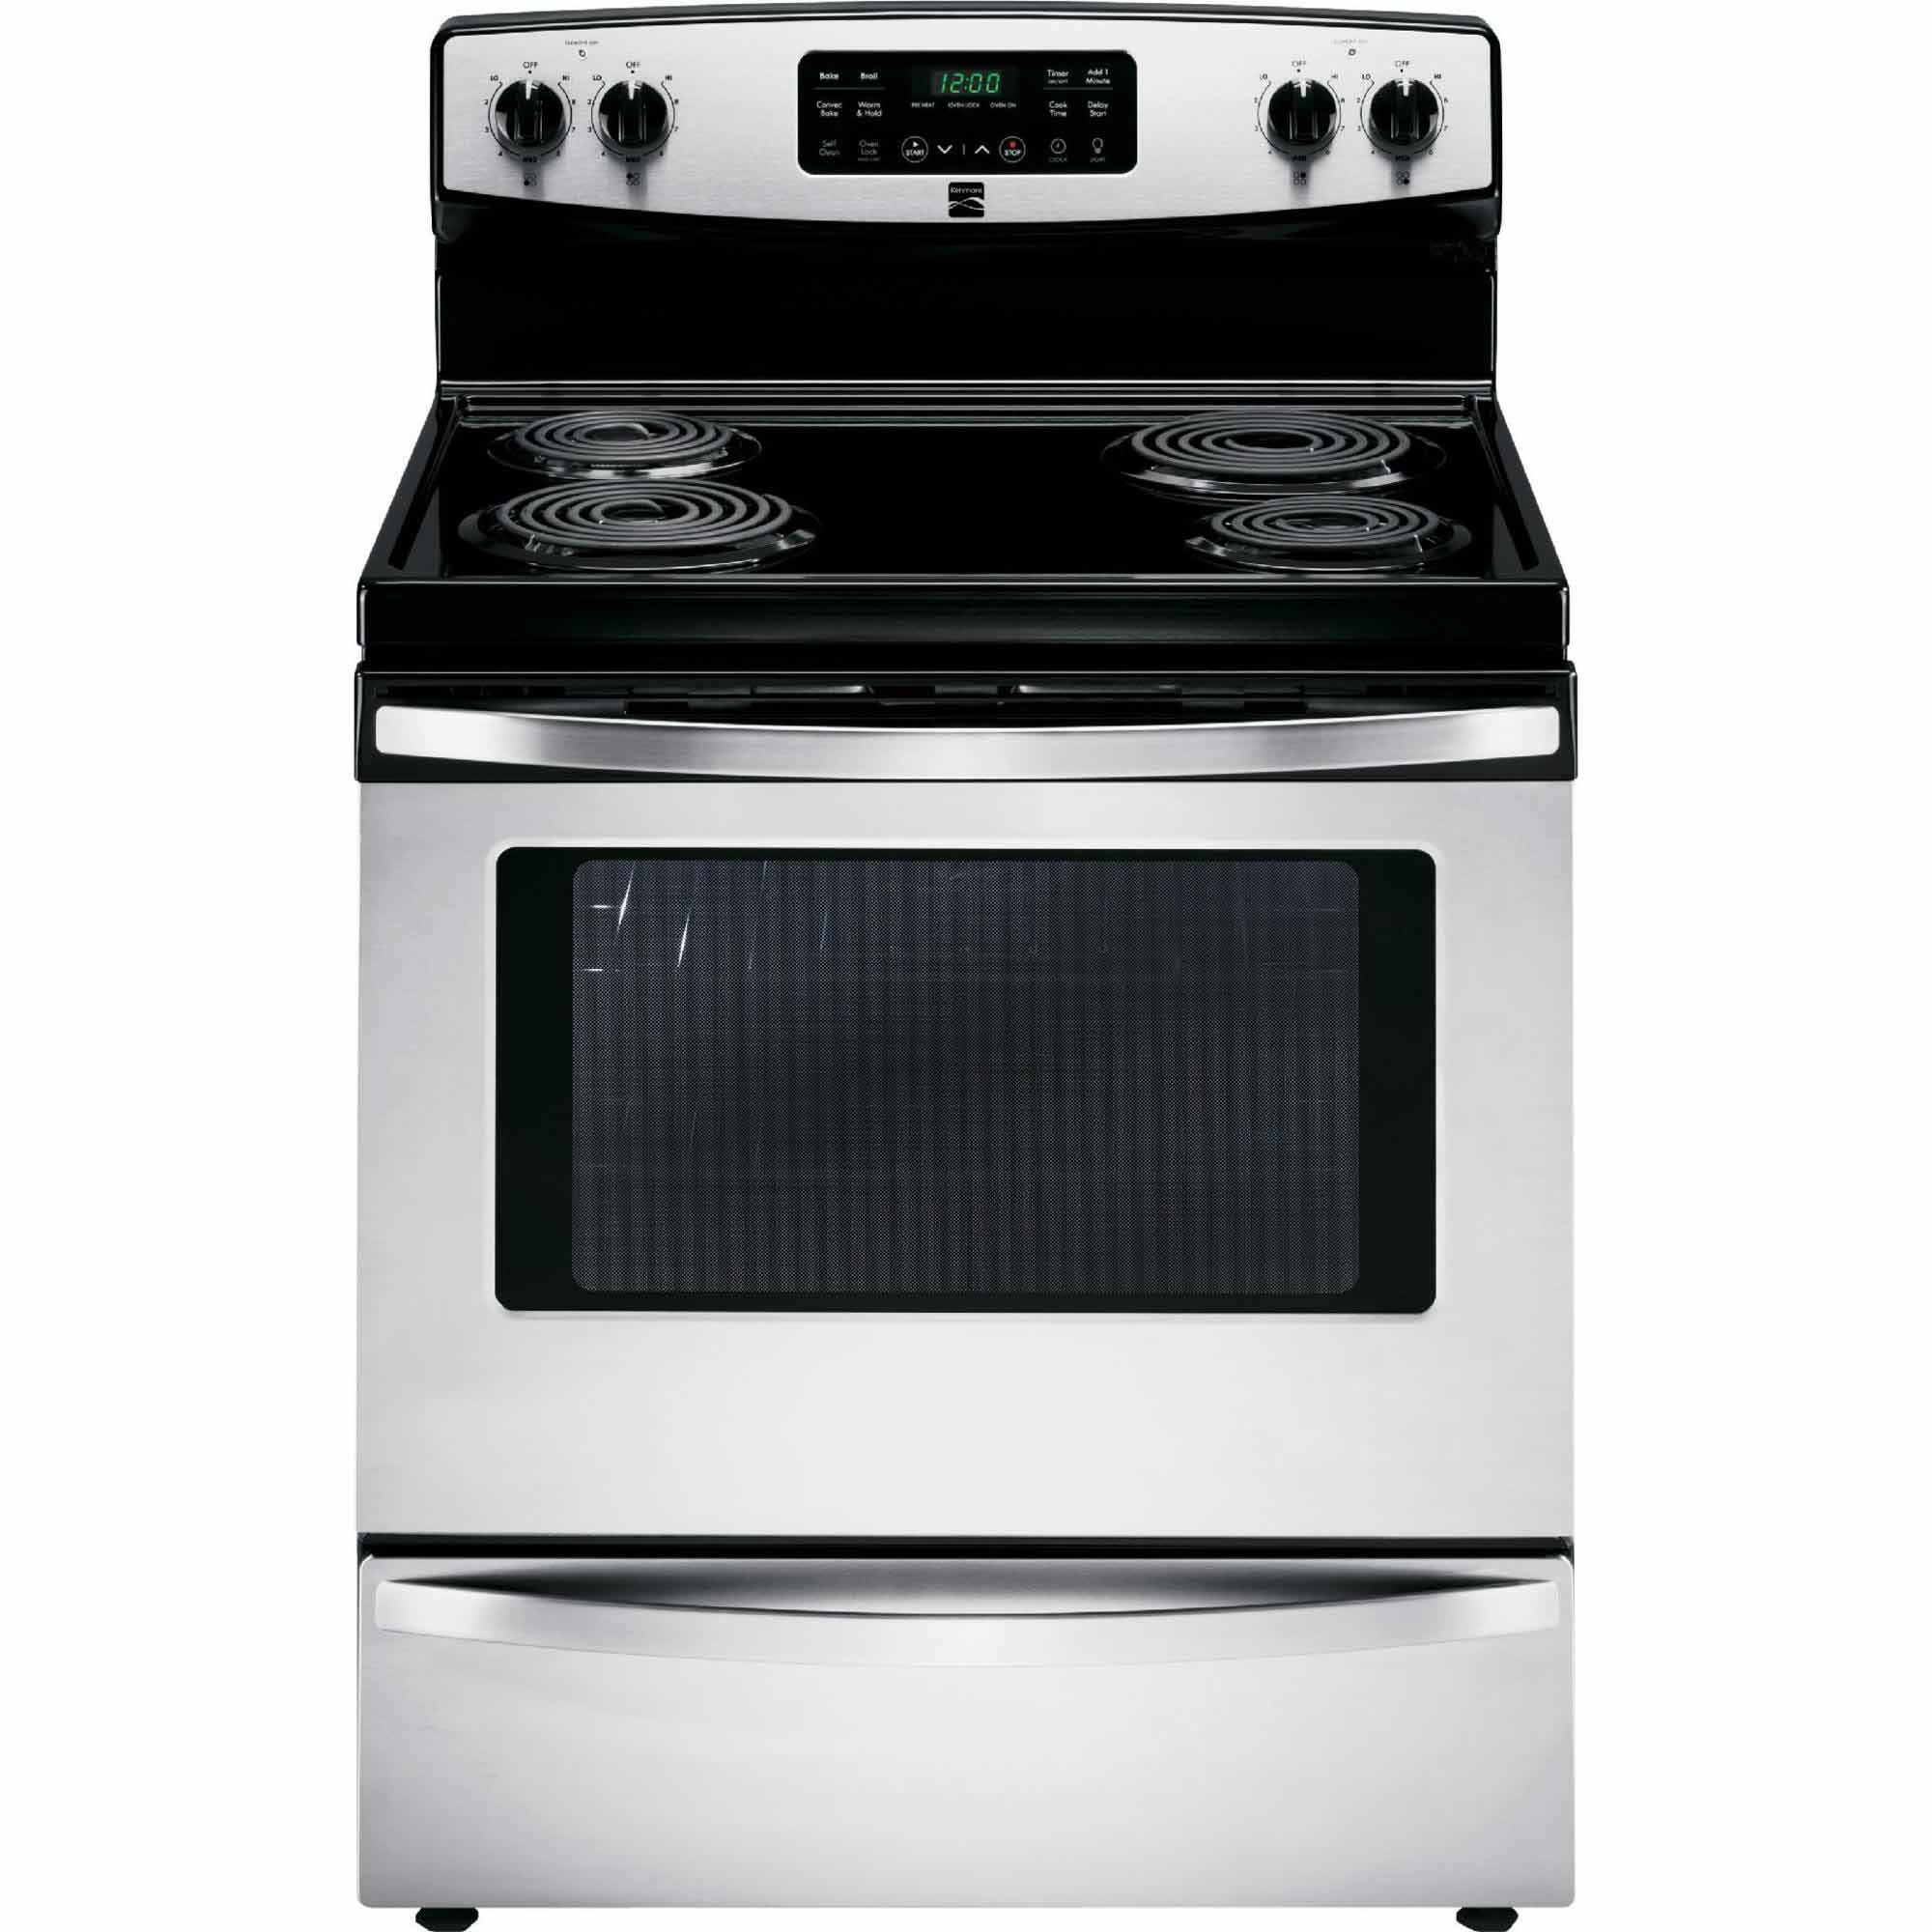 kenmore electric stove. kenmore 94153 5.4 cu. ft. self-cleaning electric range w / convection oven - stainless steel stove